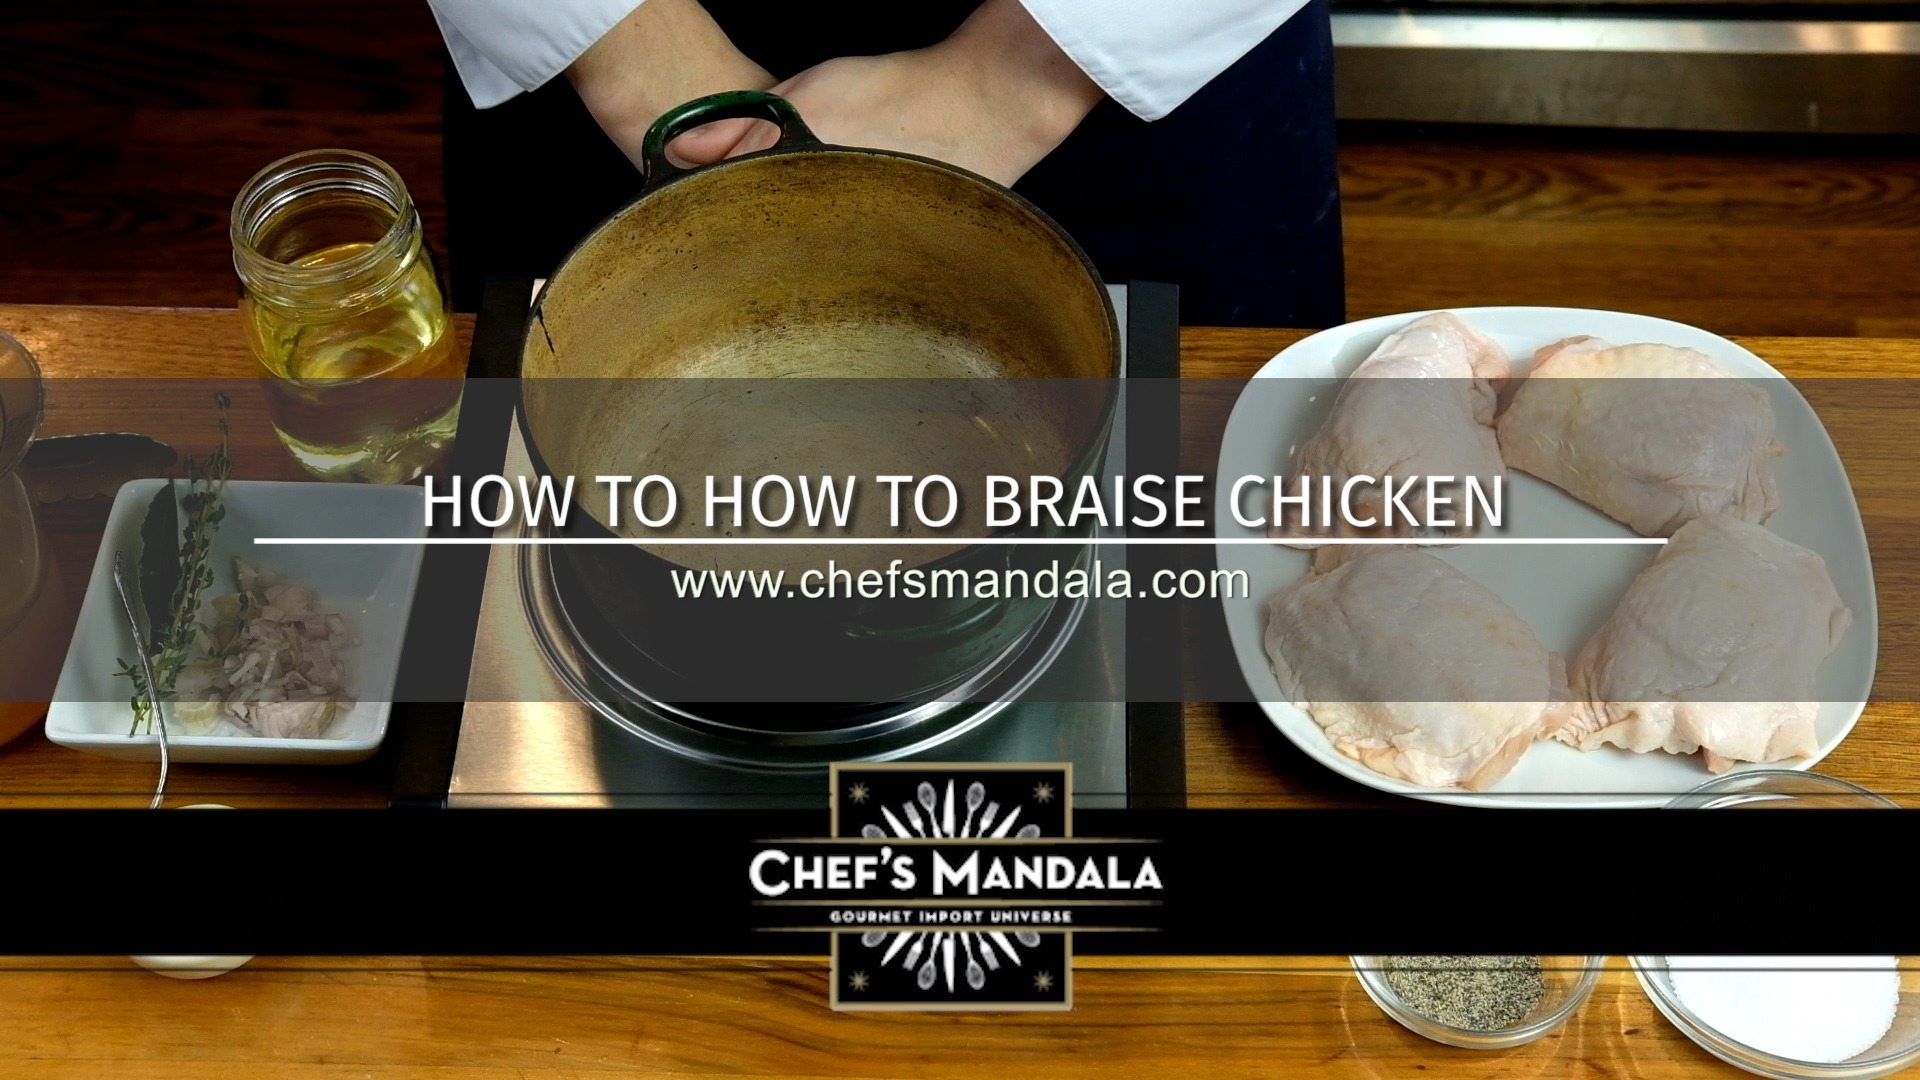 HOW TO BRAISE CHICKEN